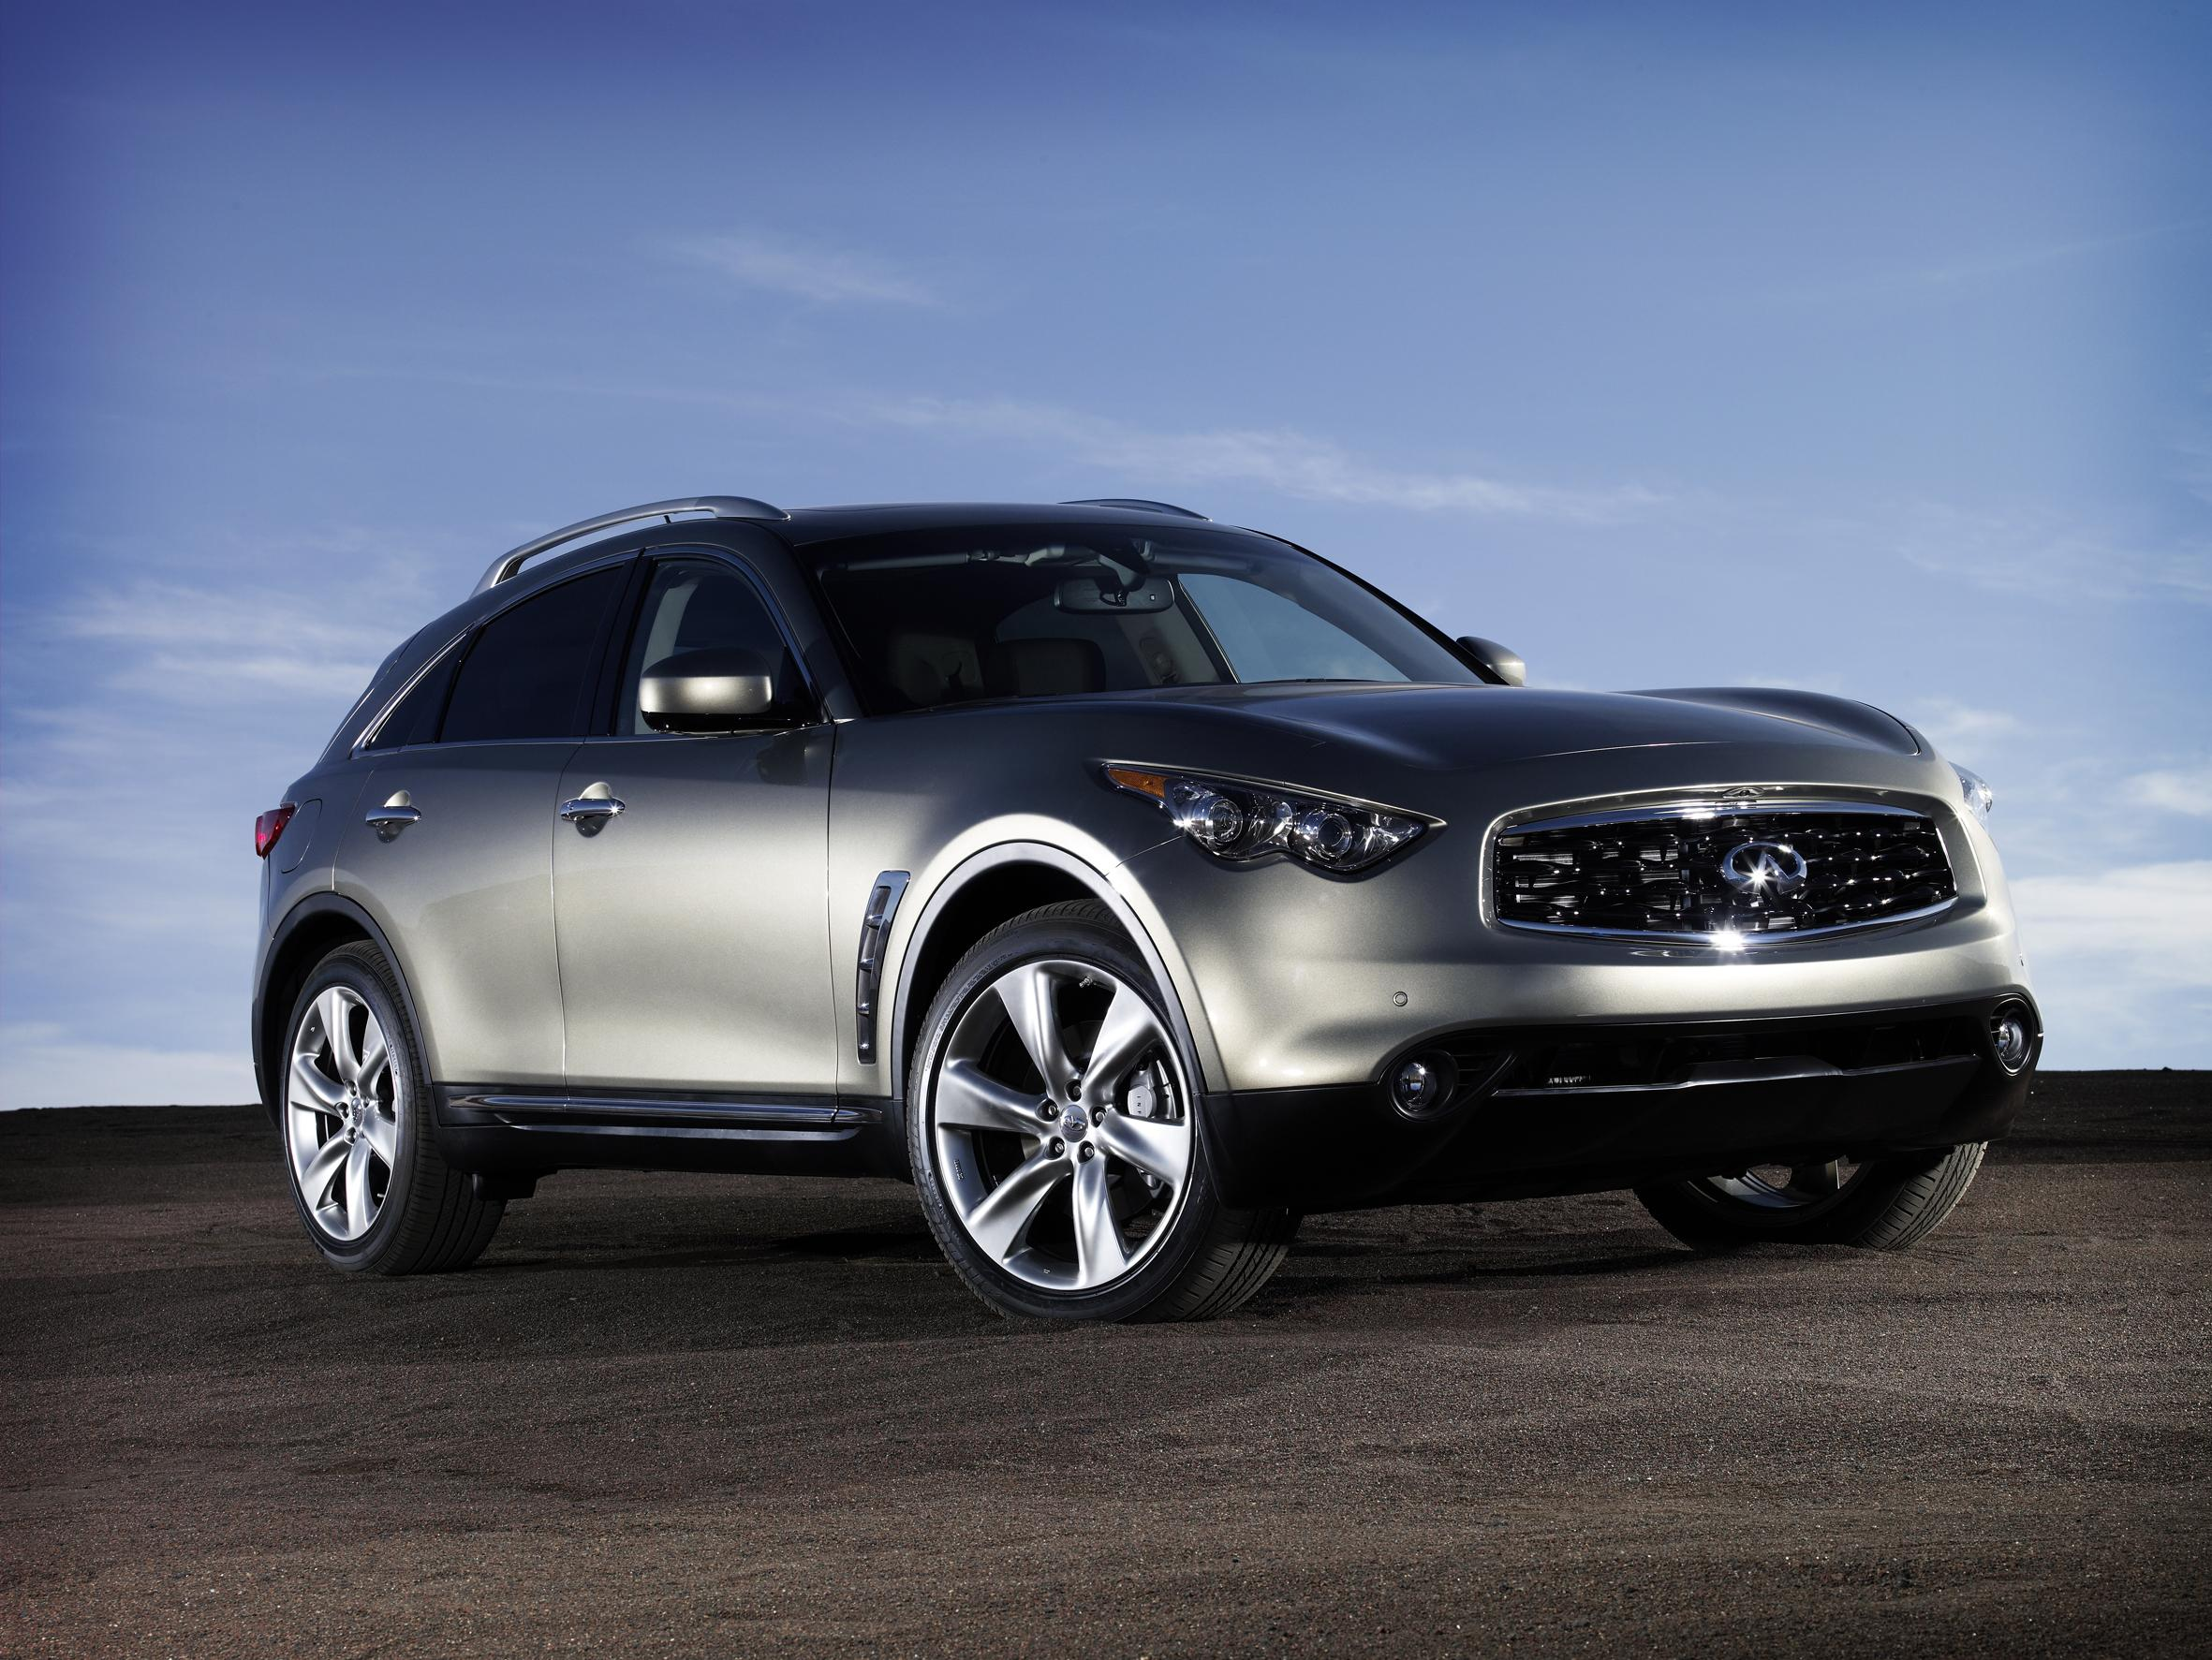 2009 infiniti fx37 and fx50 review gallery top speed click here for the latest information about the 2009 infinity fx50 vanachro Choice Image